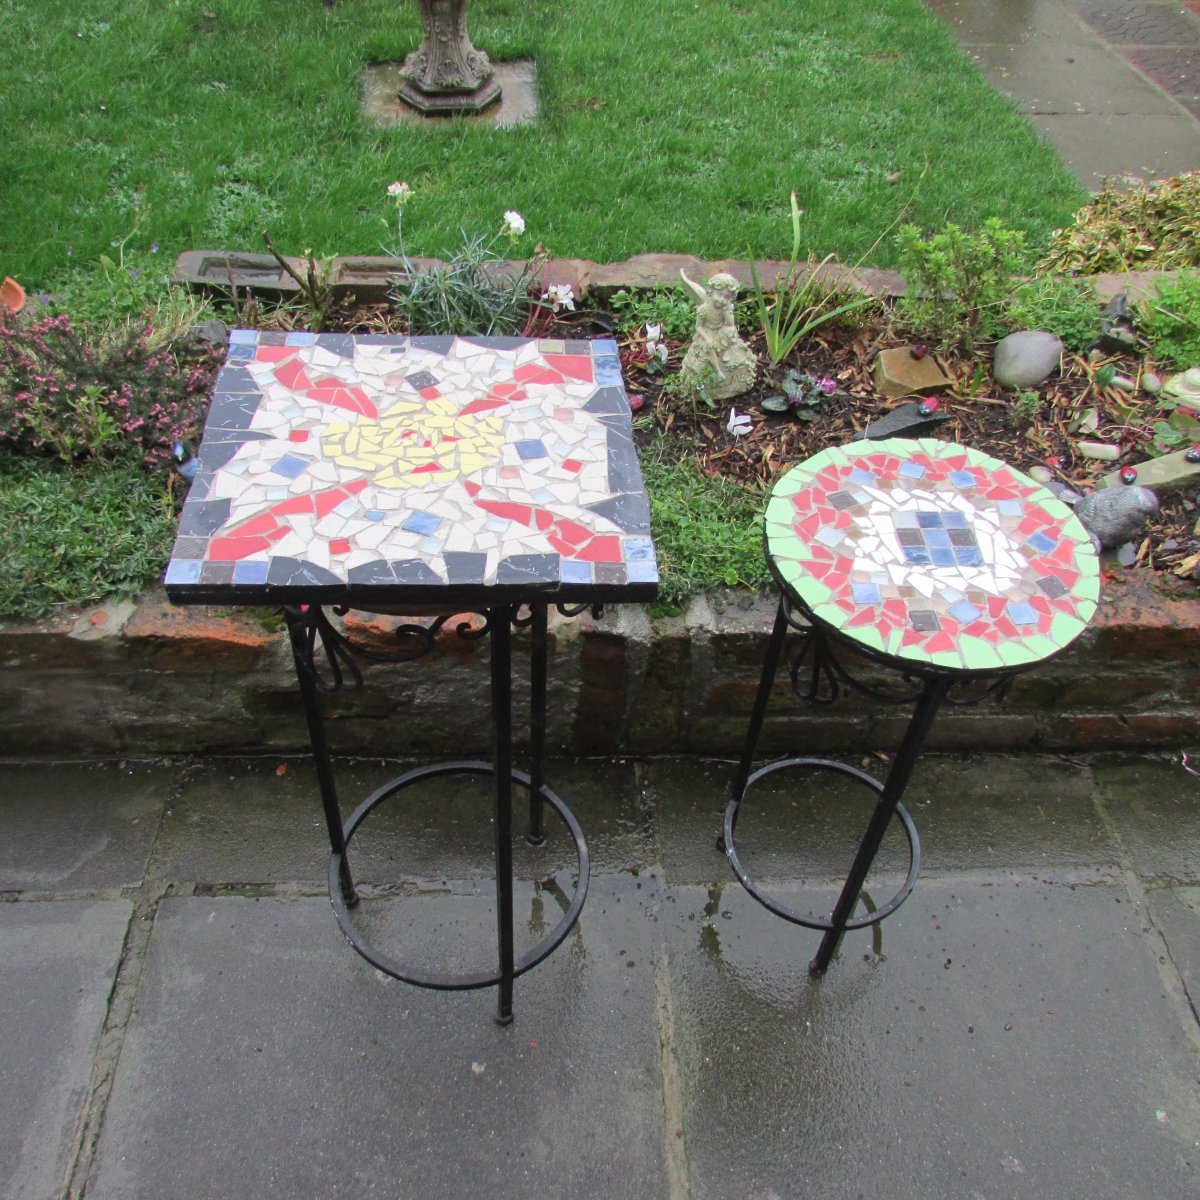 How to Create a Mosaic Design for a Table in Your Garden